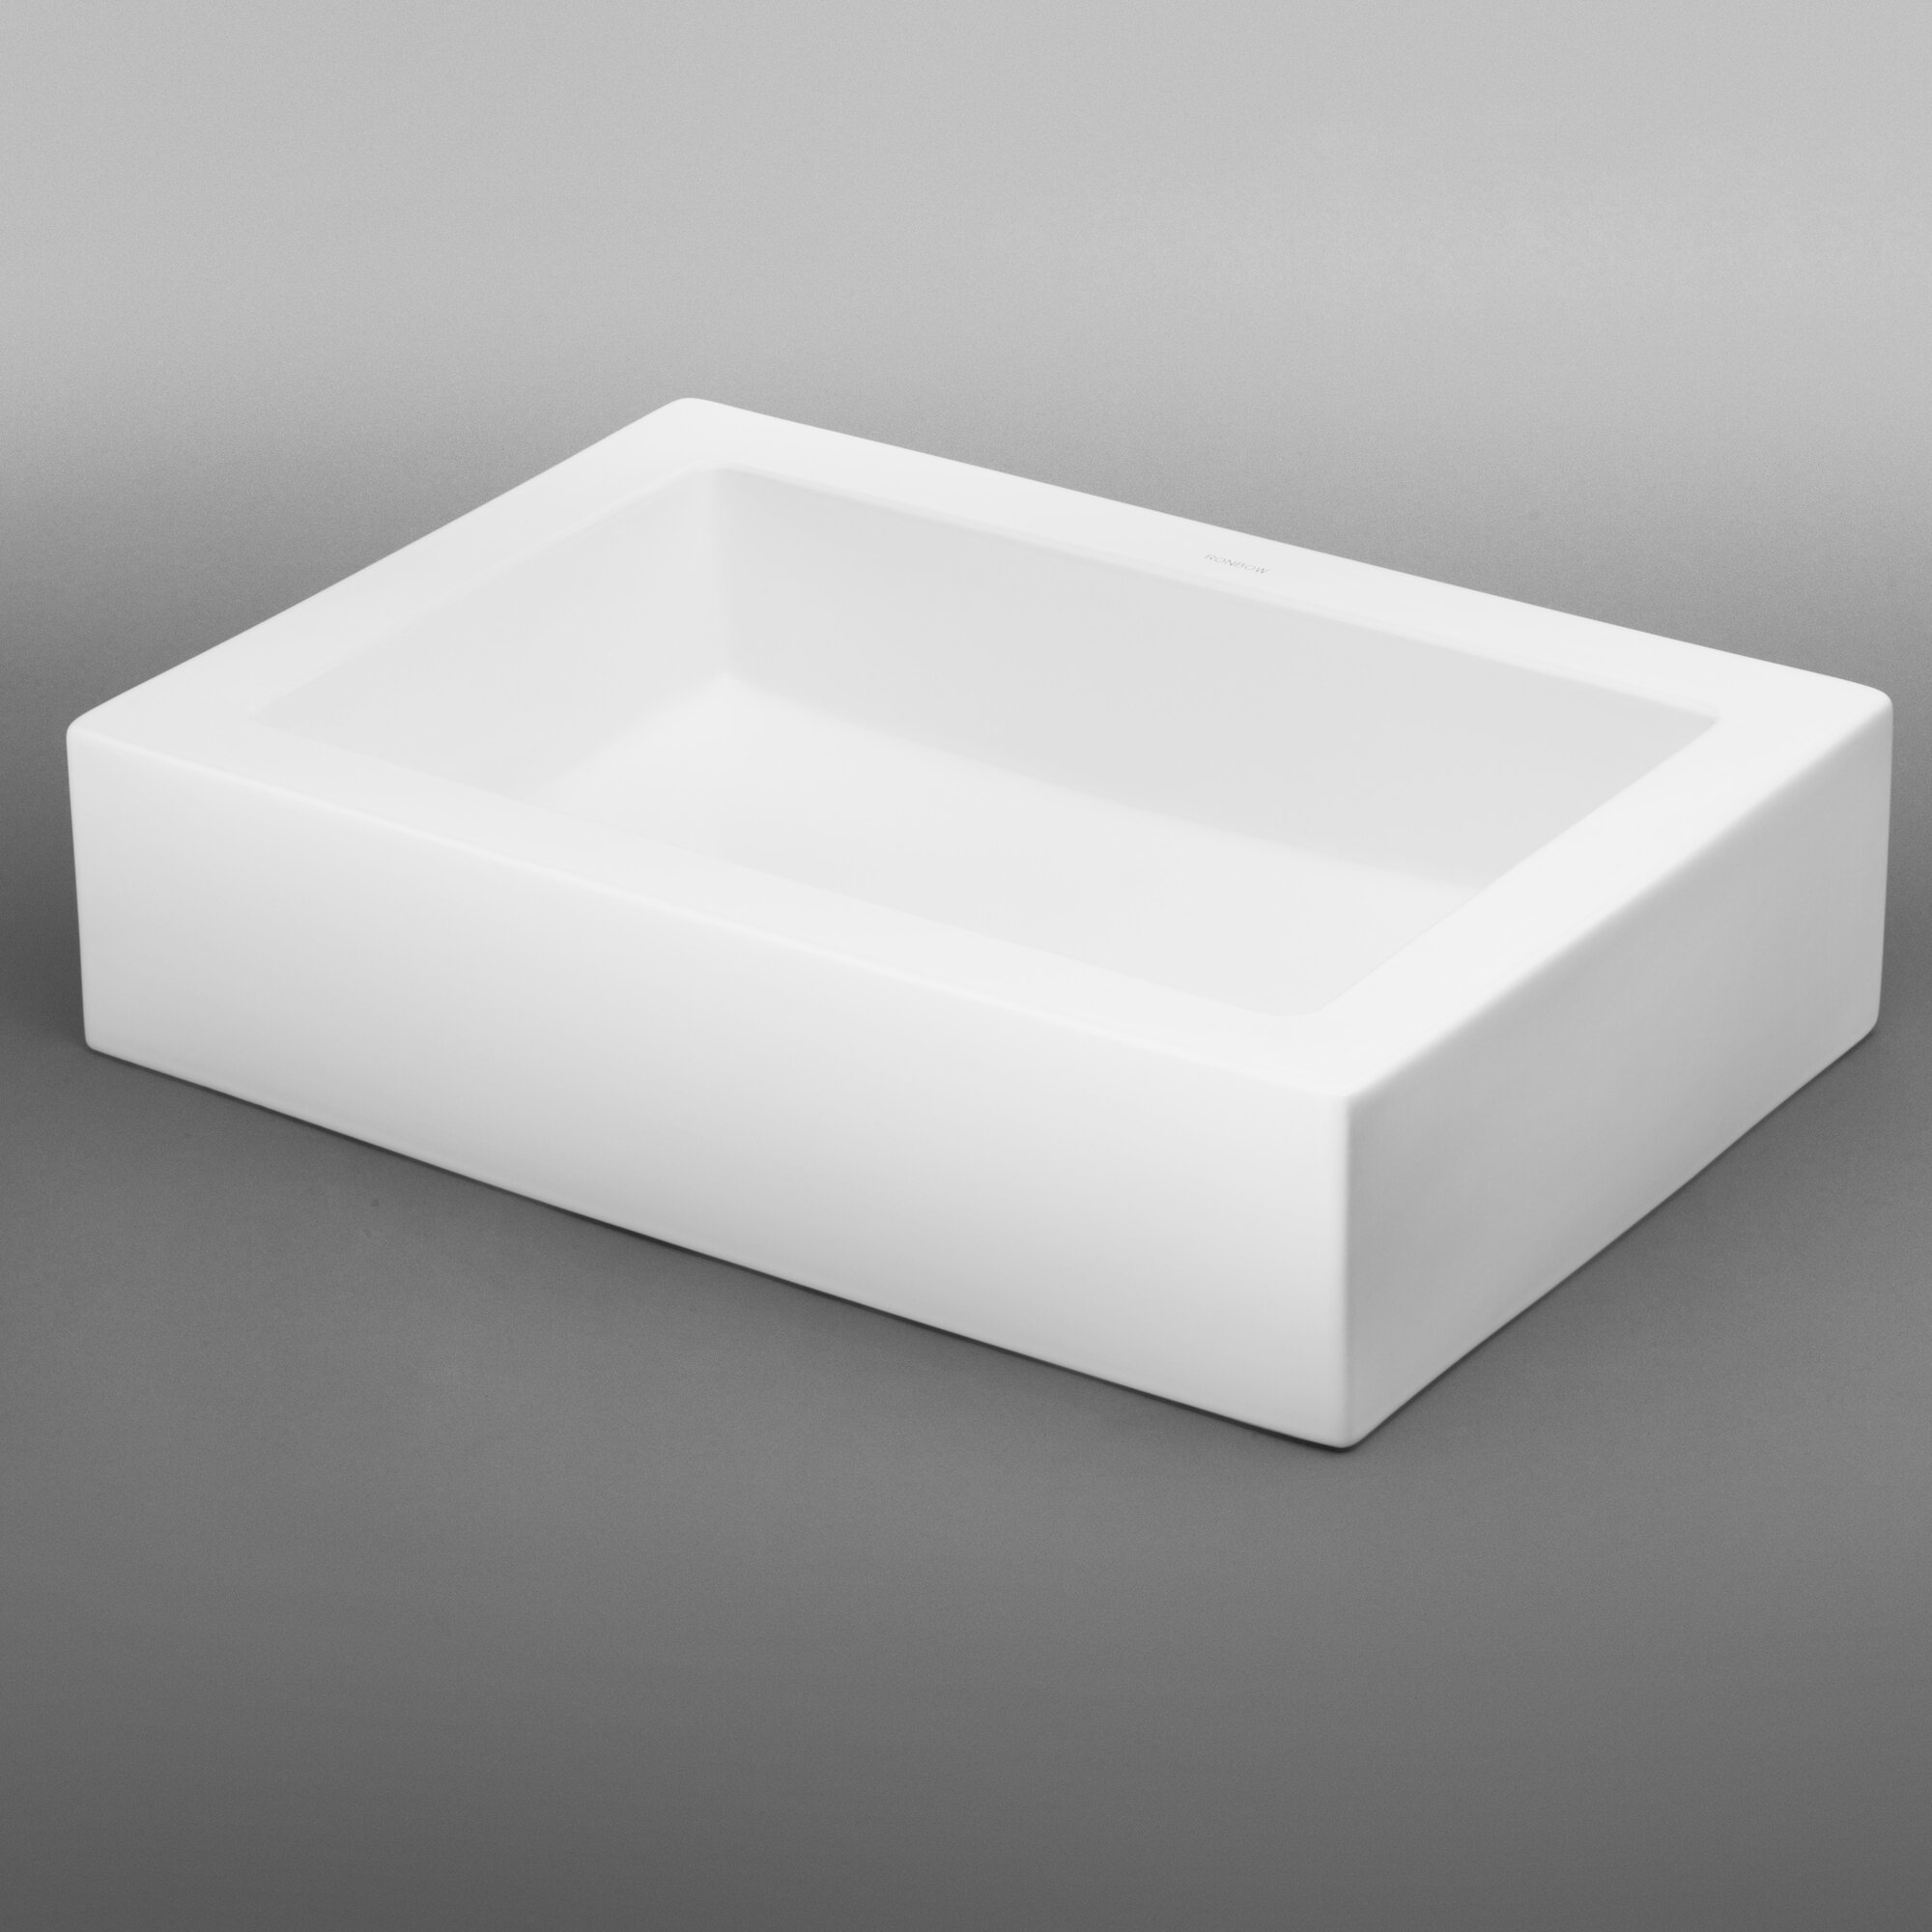 ronbow square tapered ceramic dropin bathroom sink in white  - ronbow format rectangle vessel bathroom sink reviews wayfair  ronbowbathroom sinks